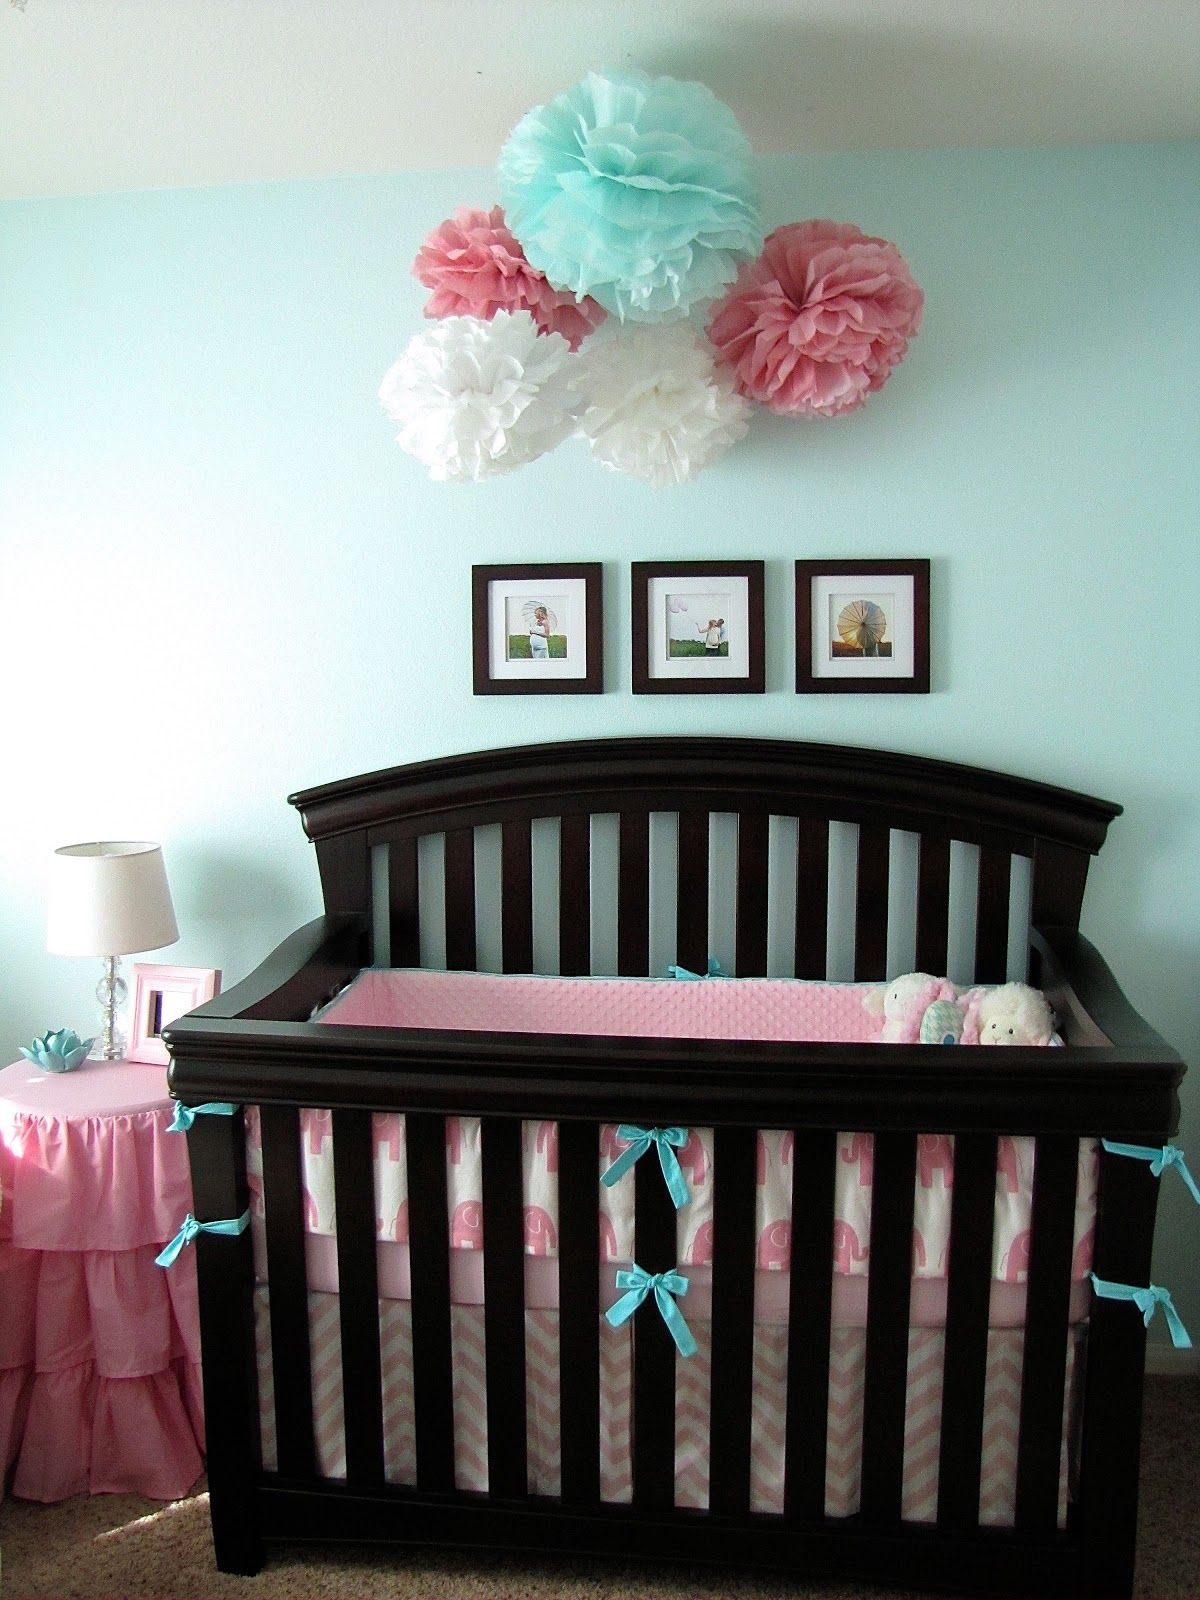 A blog about home decor bud friendly home updates sewing